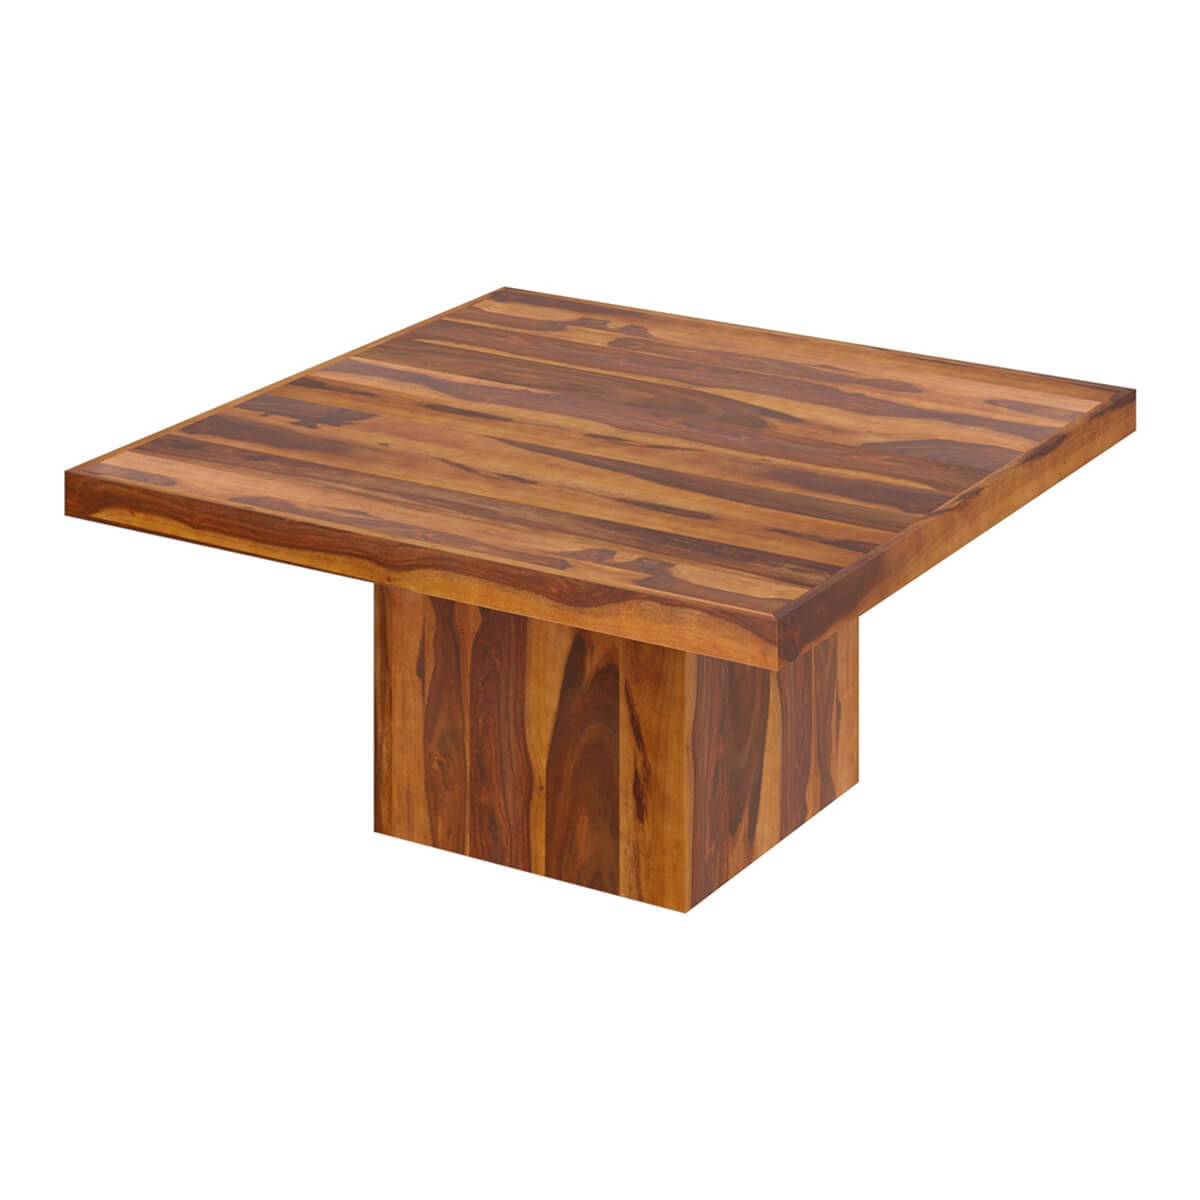 solid wood modern rustic block pedestal square dining